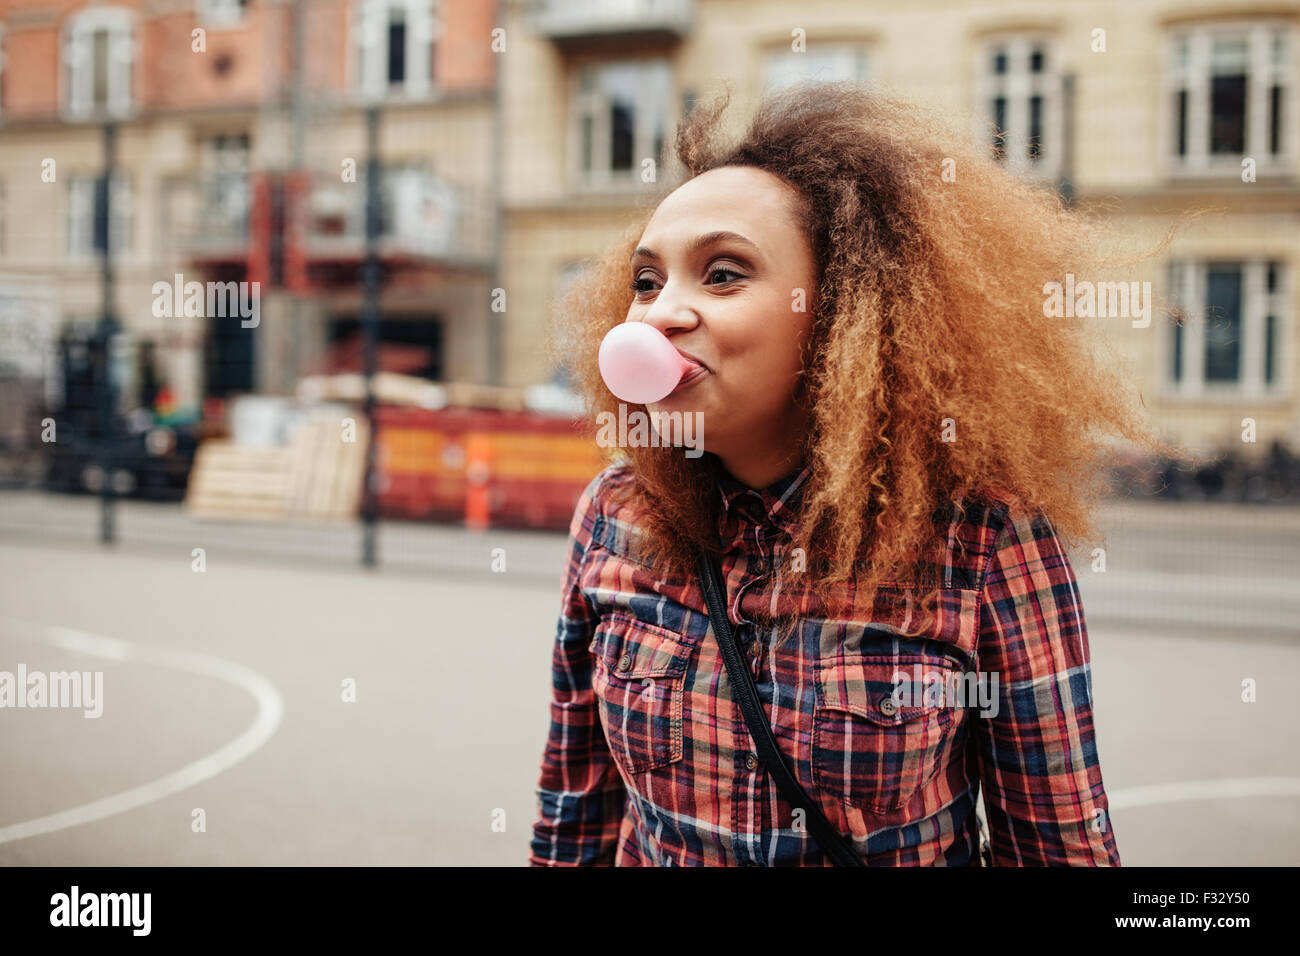 African young woman blowing a bubble with her chewing gum. Casual young woman on city street having fun. - Stock Image